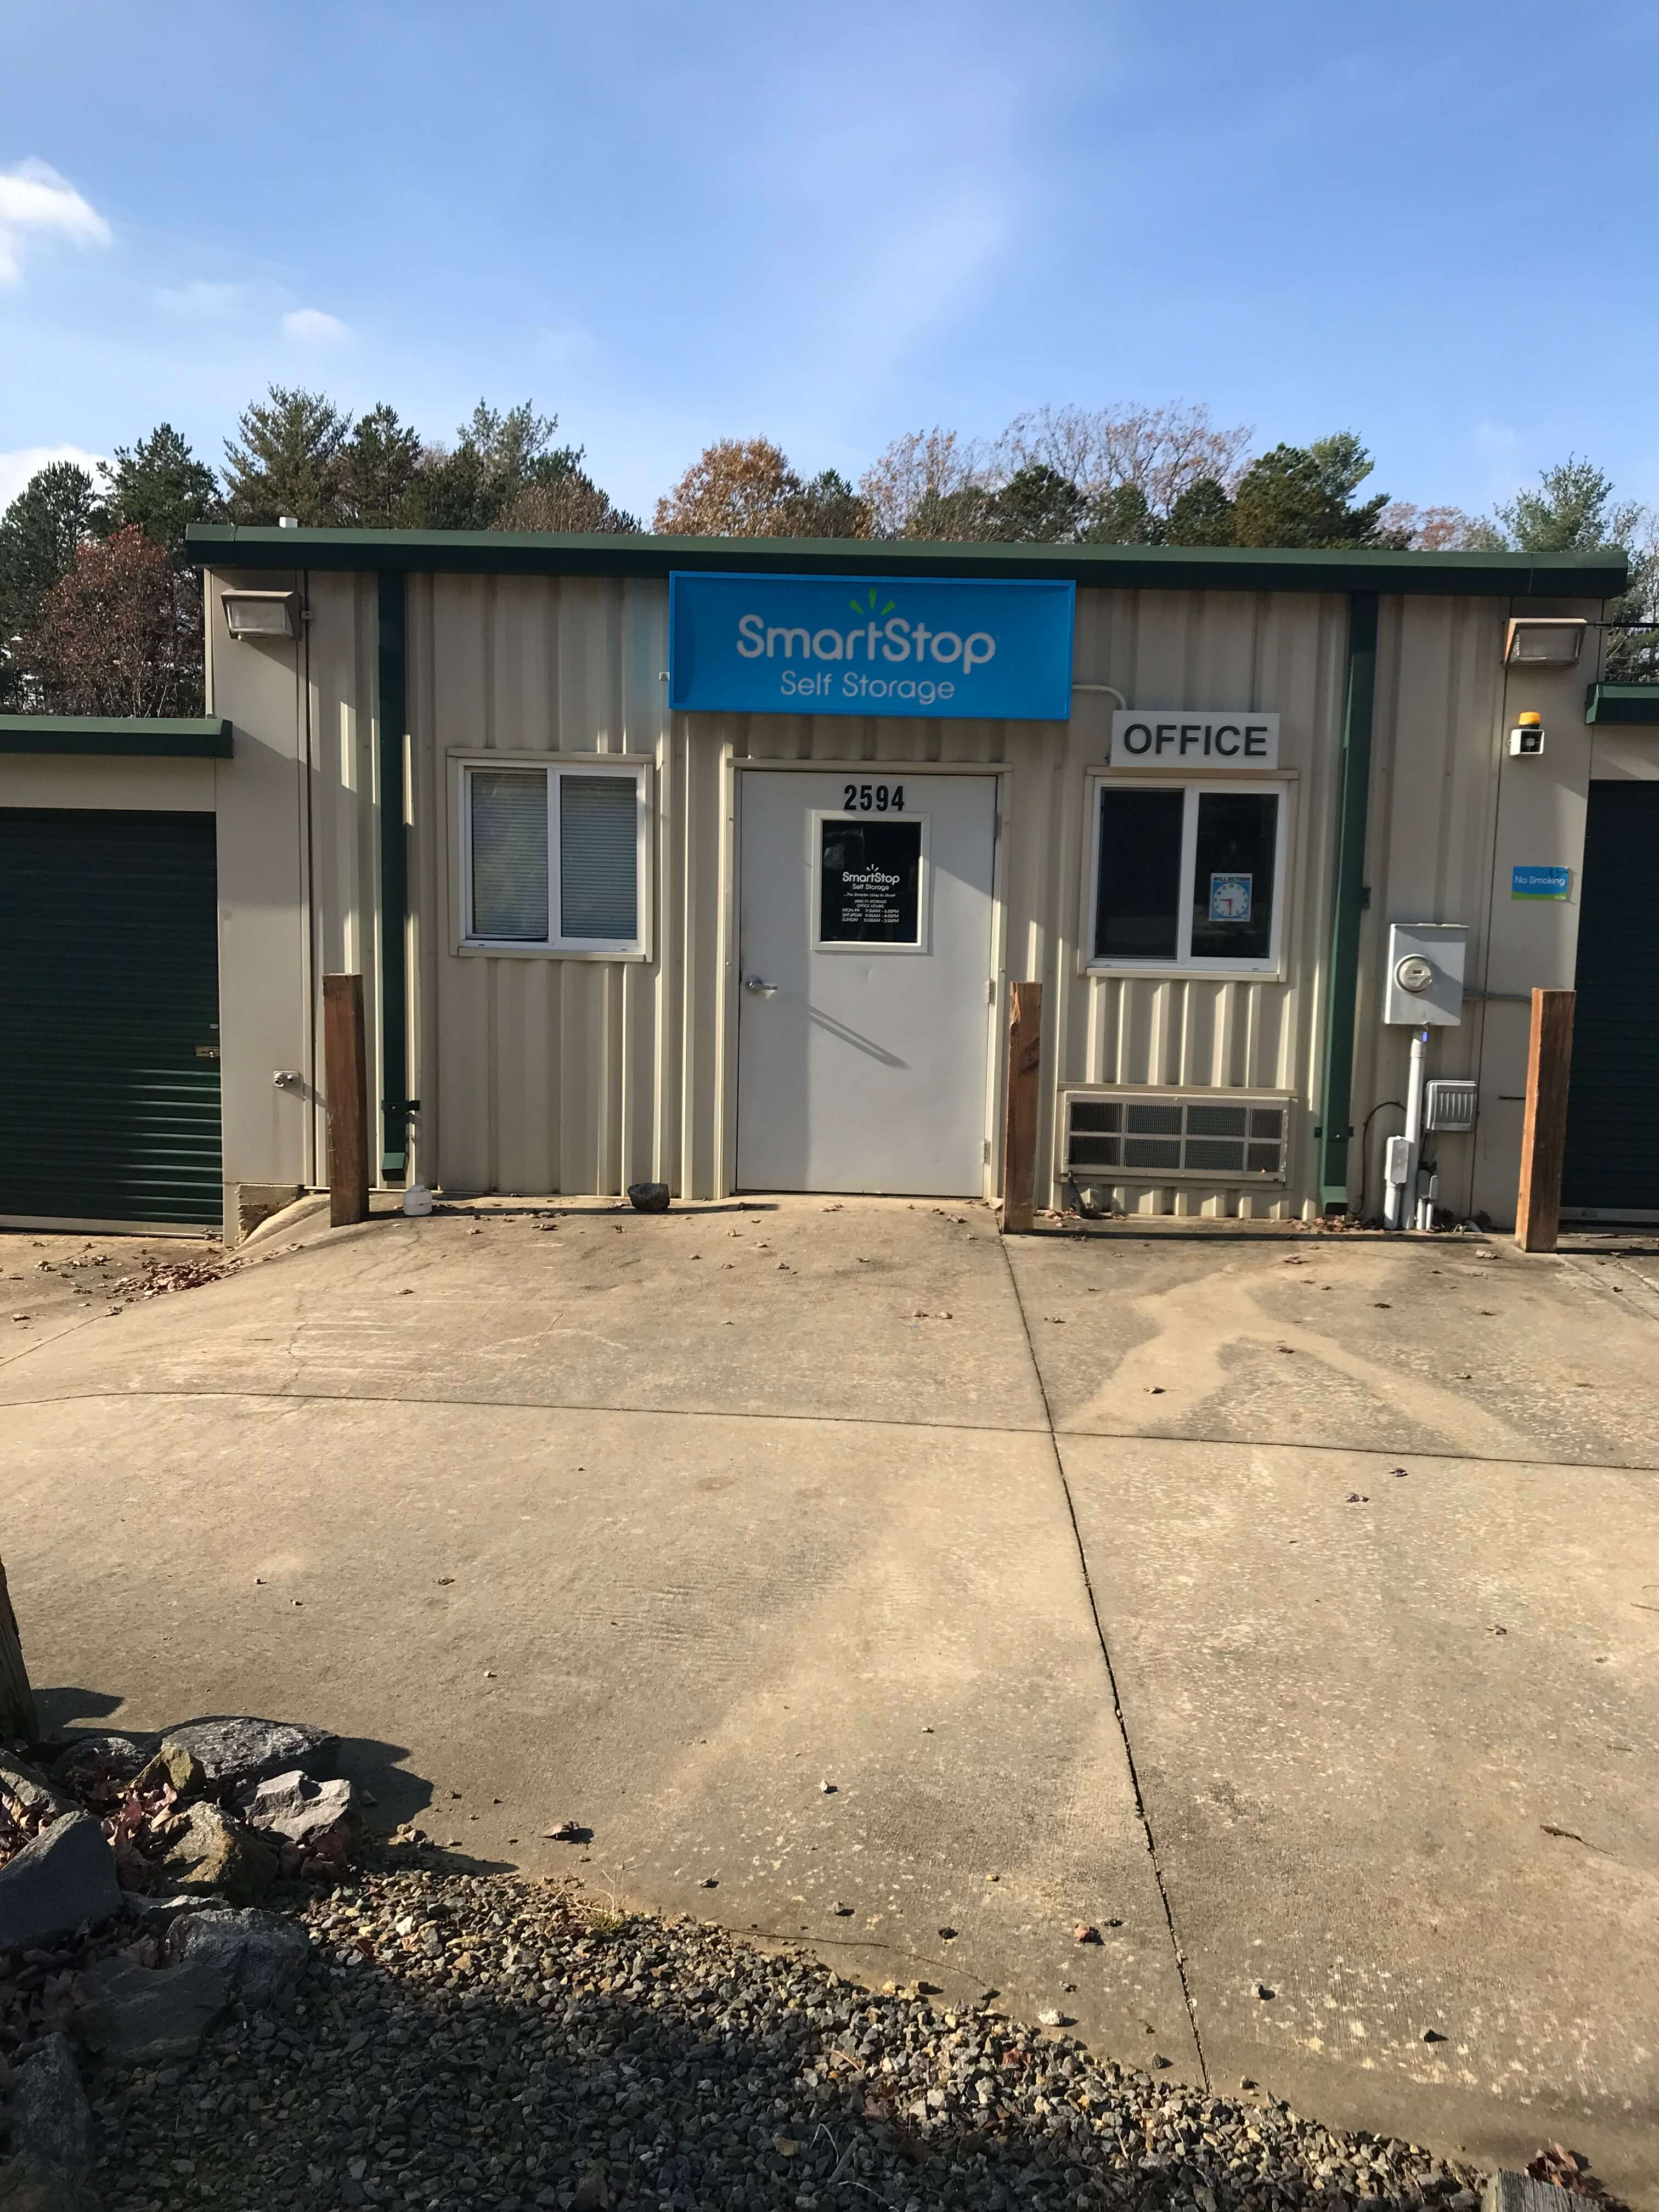 Front Office at Smart Stop self storage facility located at 2594 Sweeten Creek Road, Asheville North Carolina